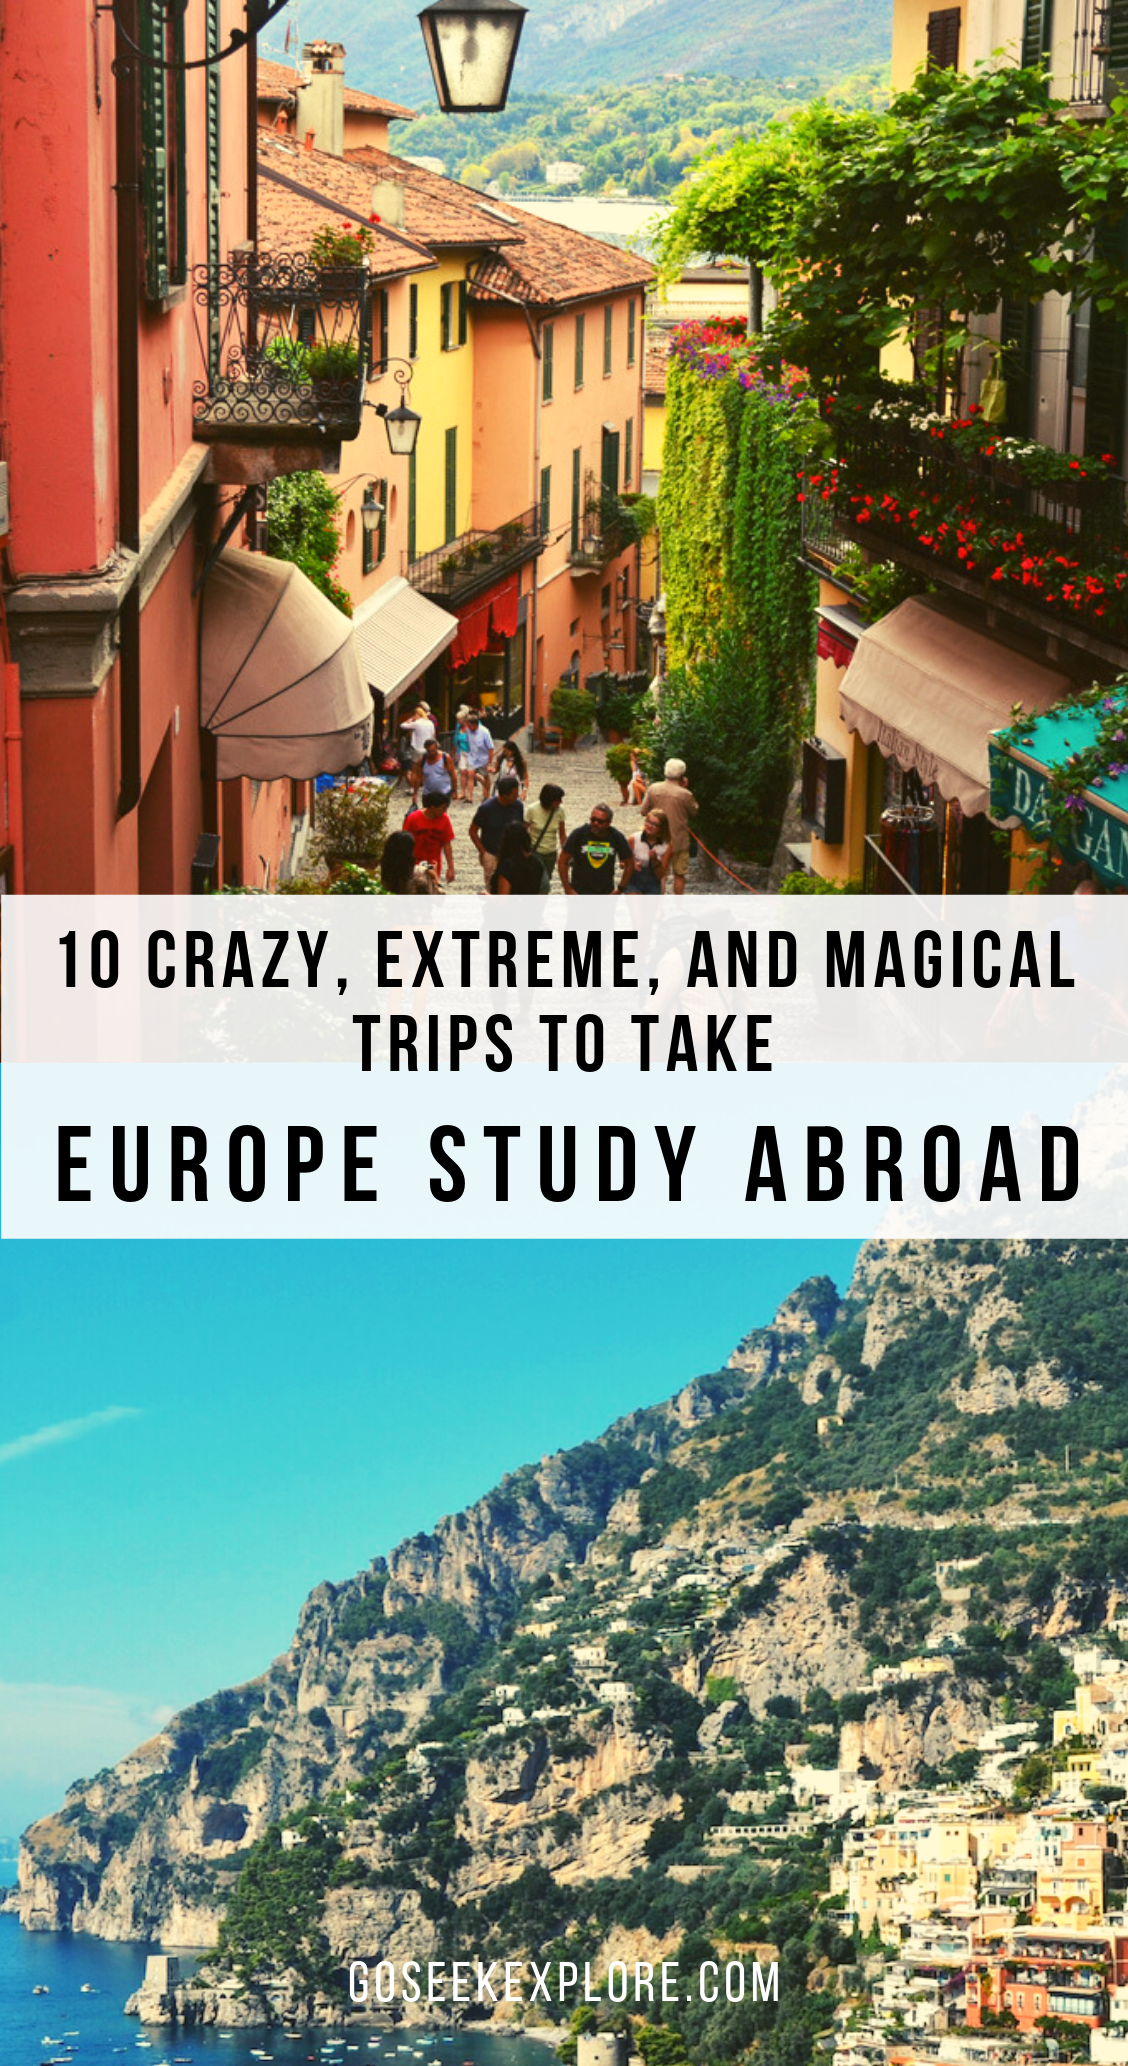 10 Crazy, Extreme, and Magical Trips to Take when you Study Abroad in Europe! GoSeekExplore.com #europe #europetravel #studyabroad #europetraveltips